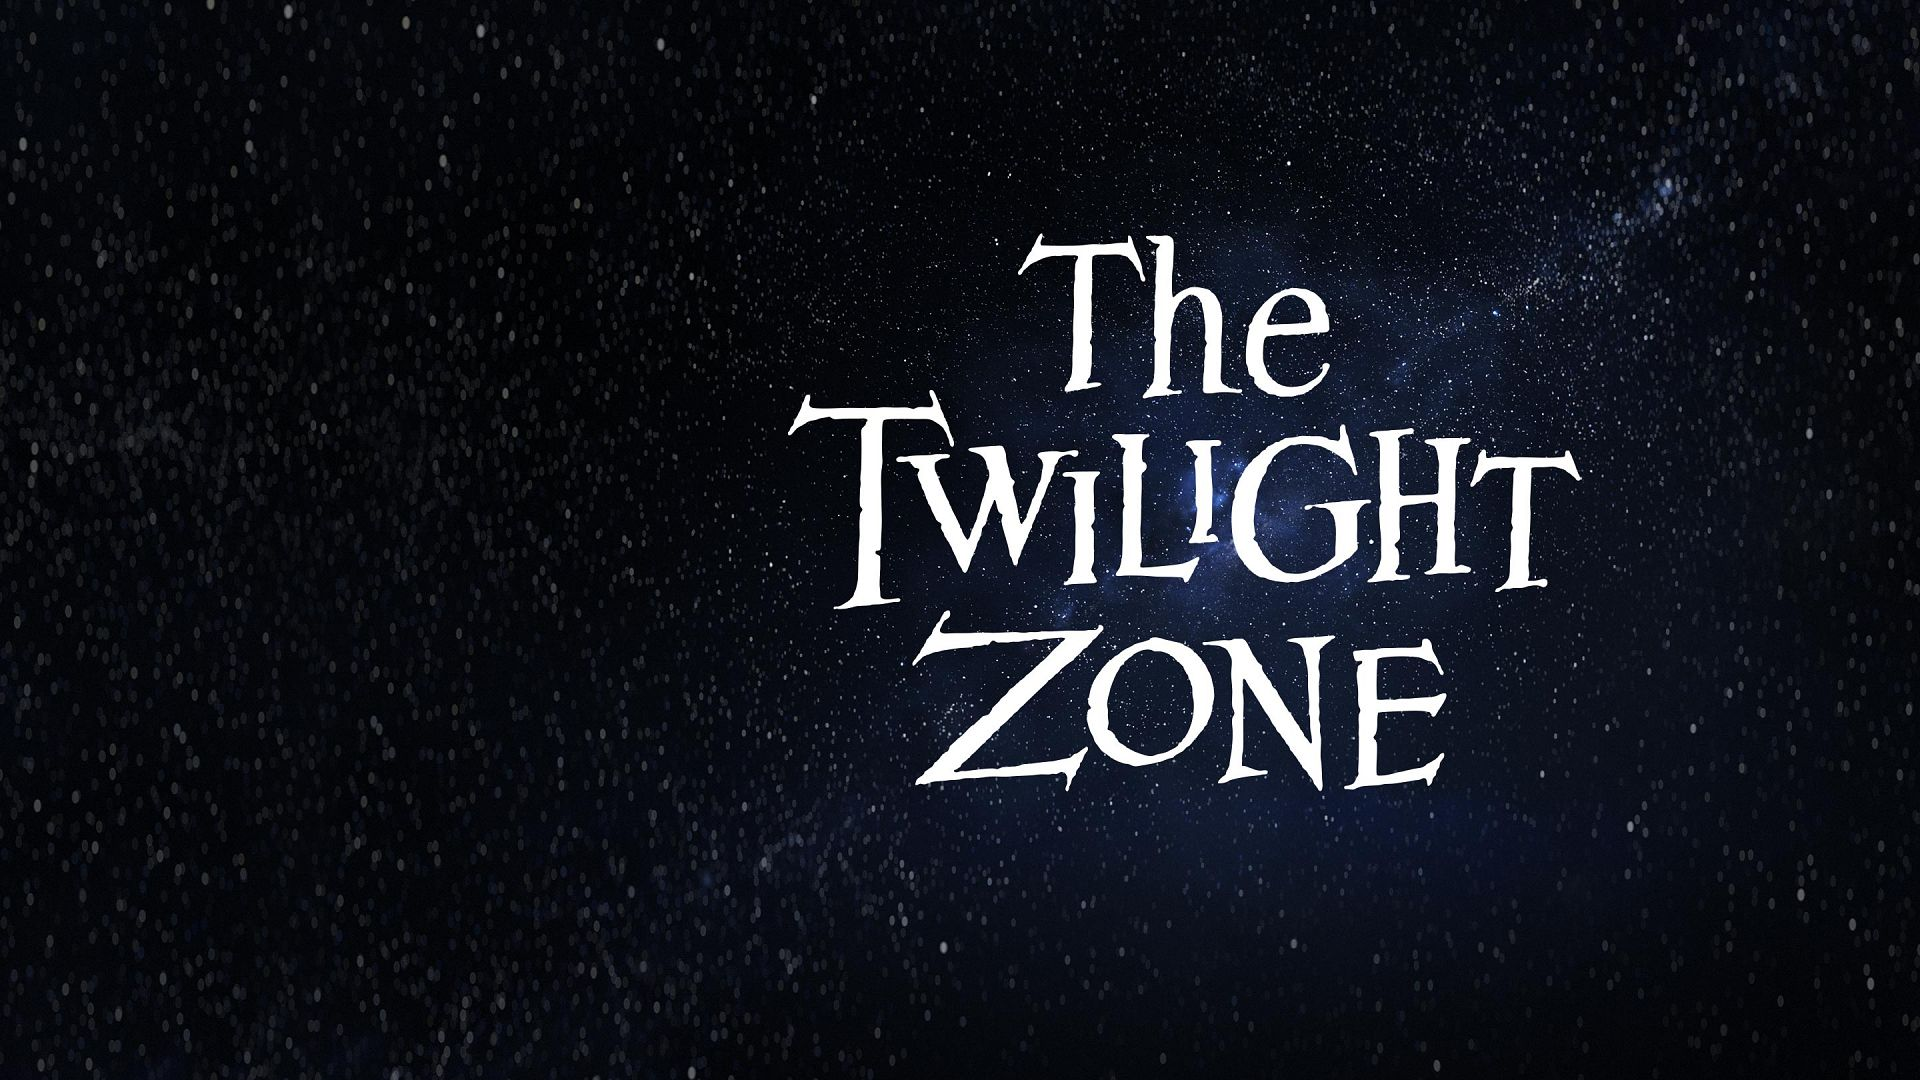 Casting news for second season The Twilight Zone (2019)